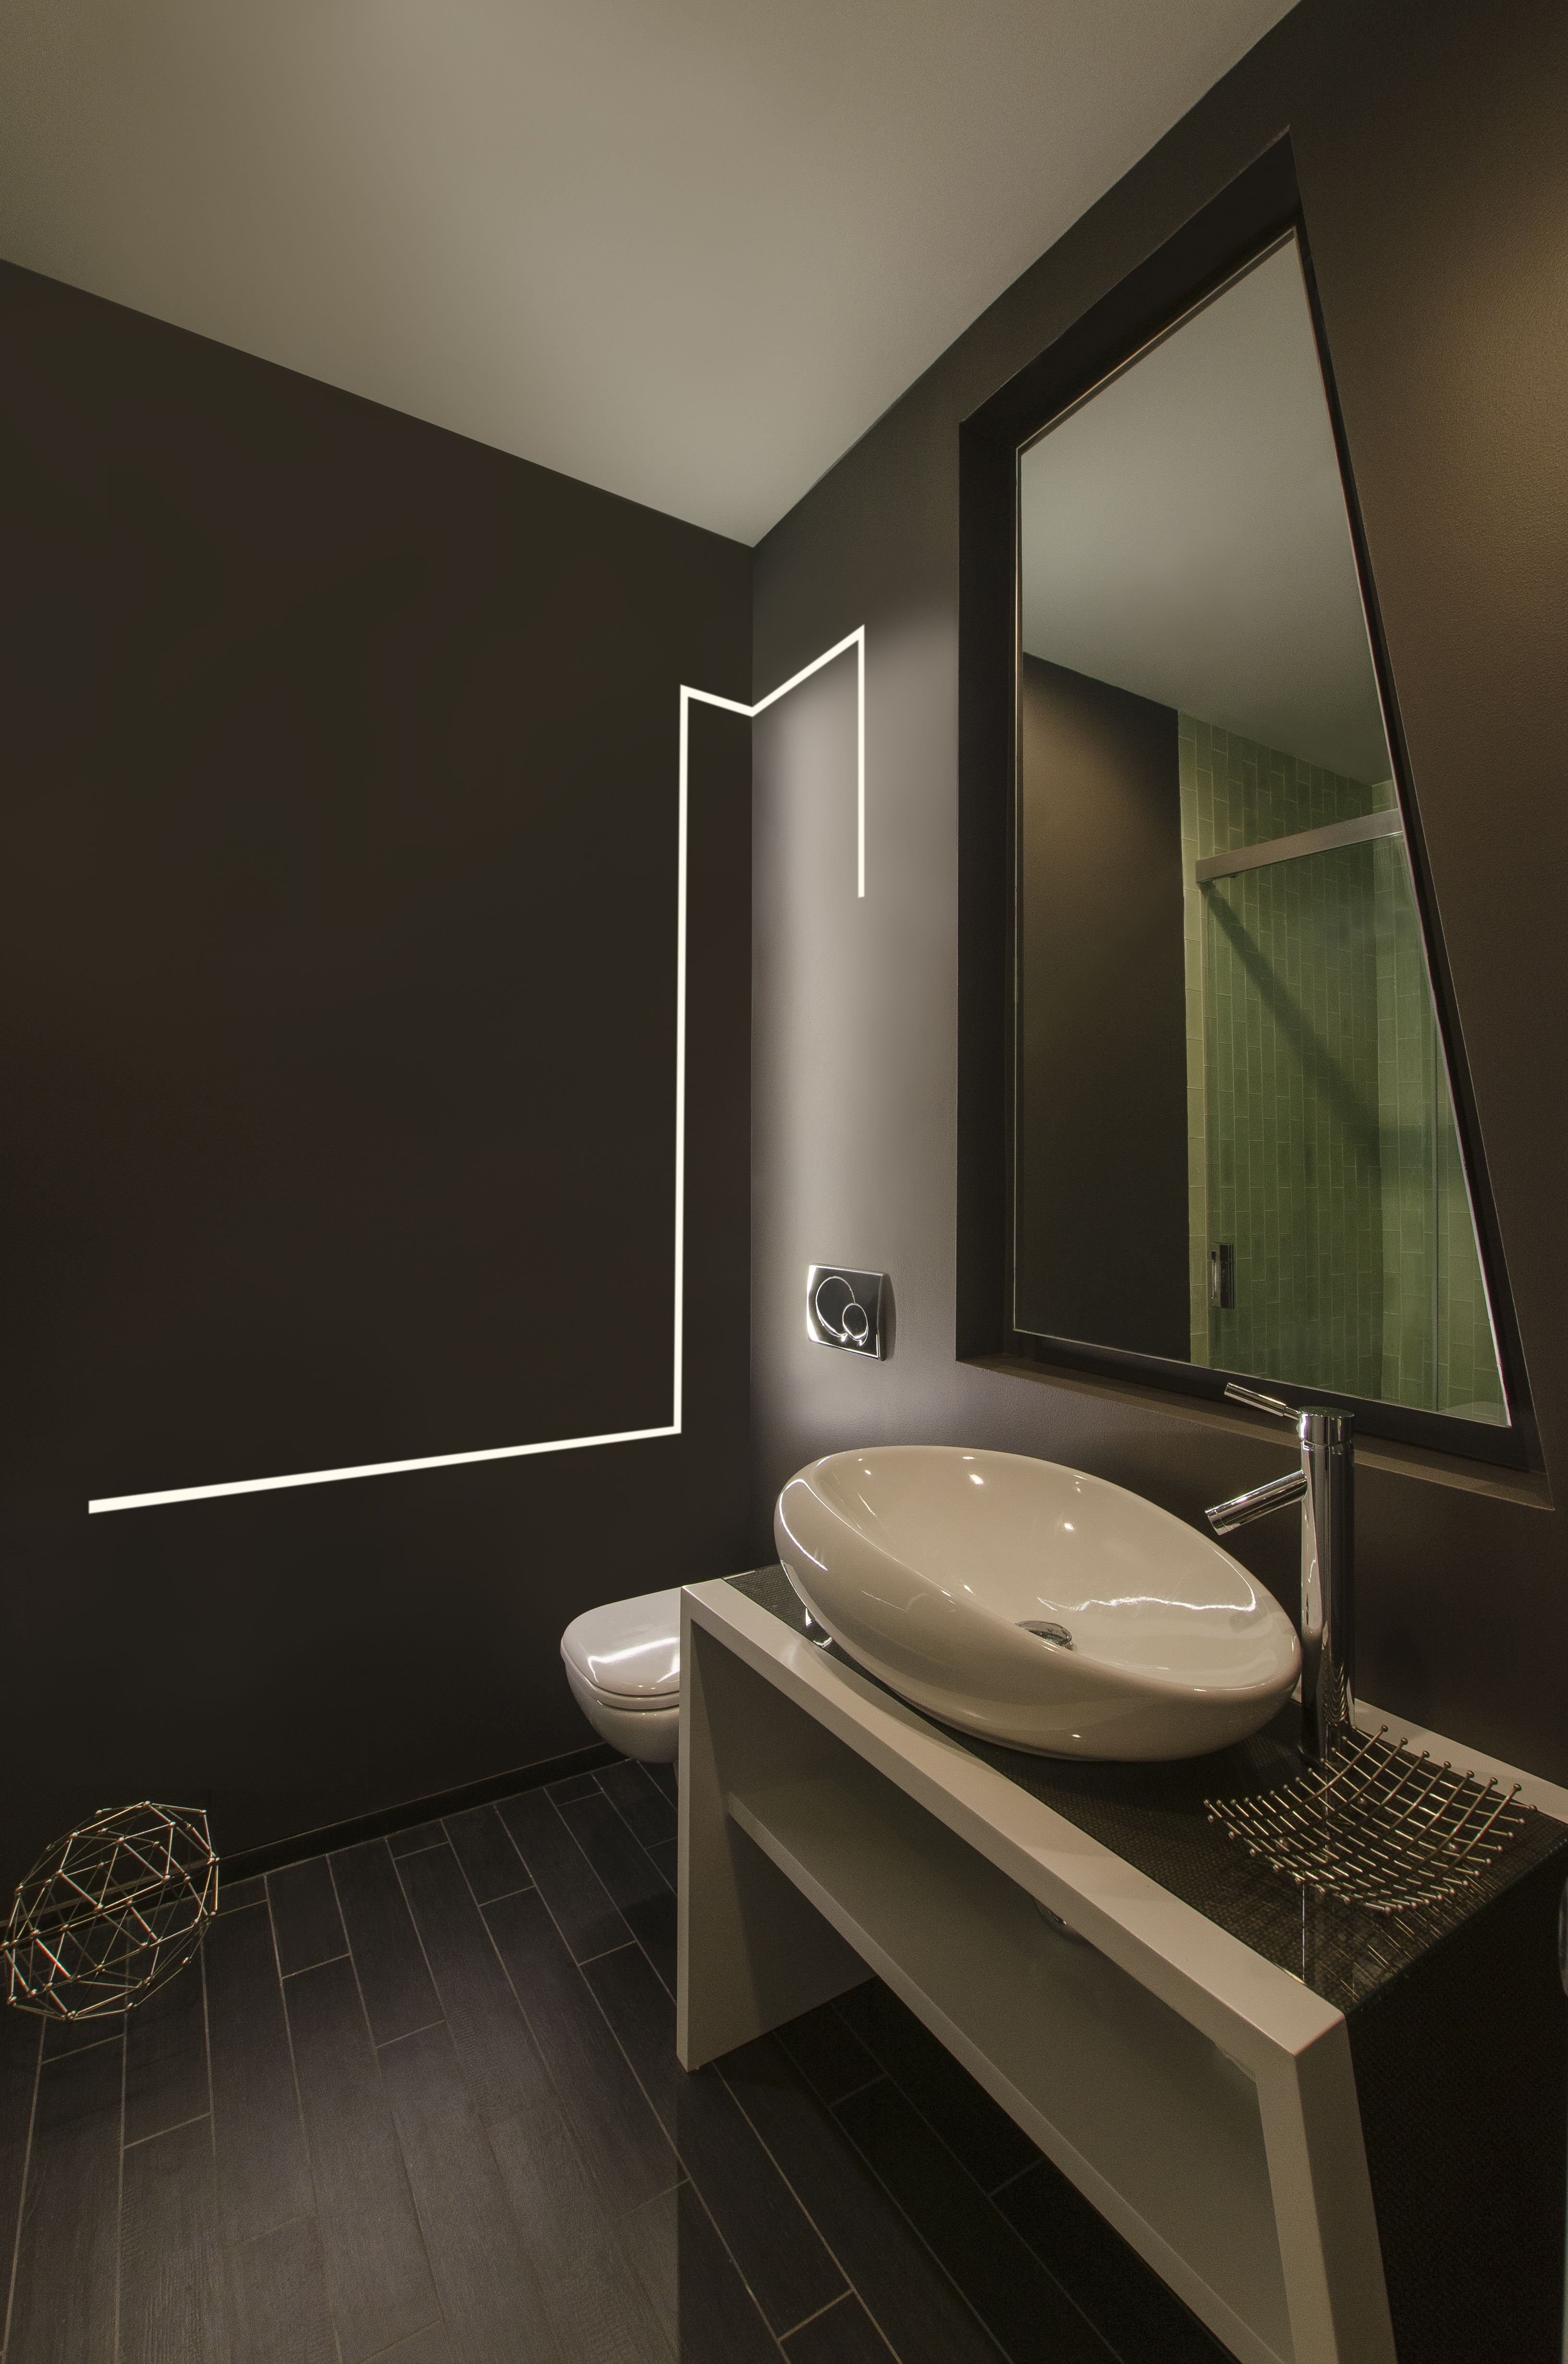 Plaster in led lighting modern led lighting for the bathroom led strip lighting built into the wall of this bathroom how cool mozeypictures Gallery